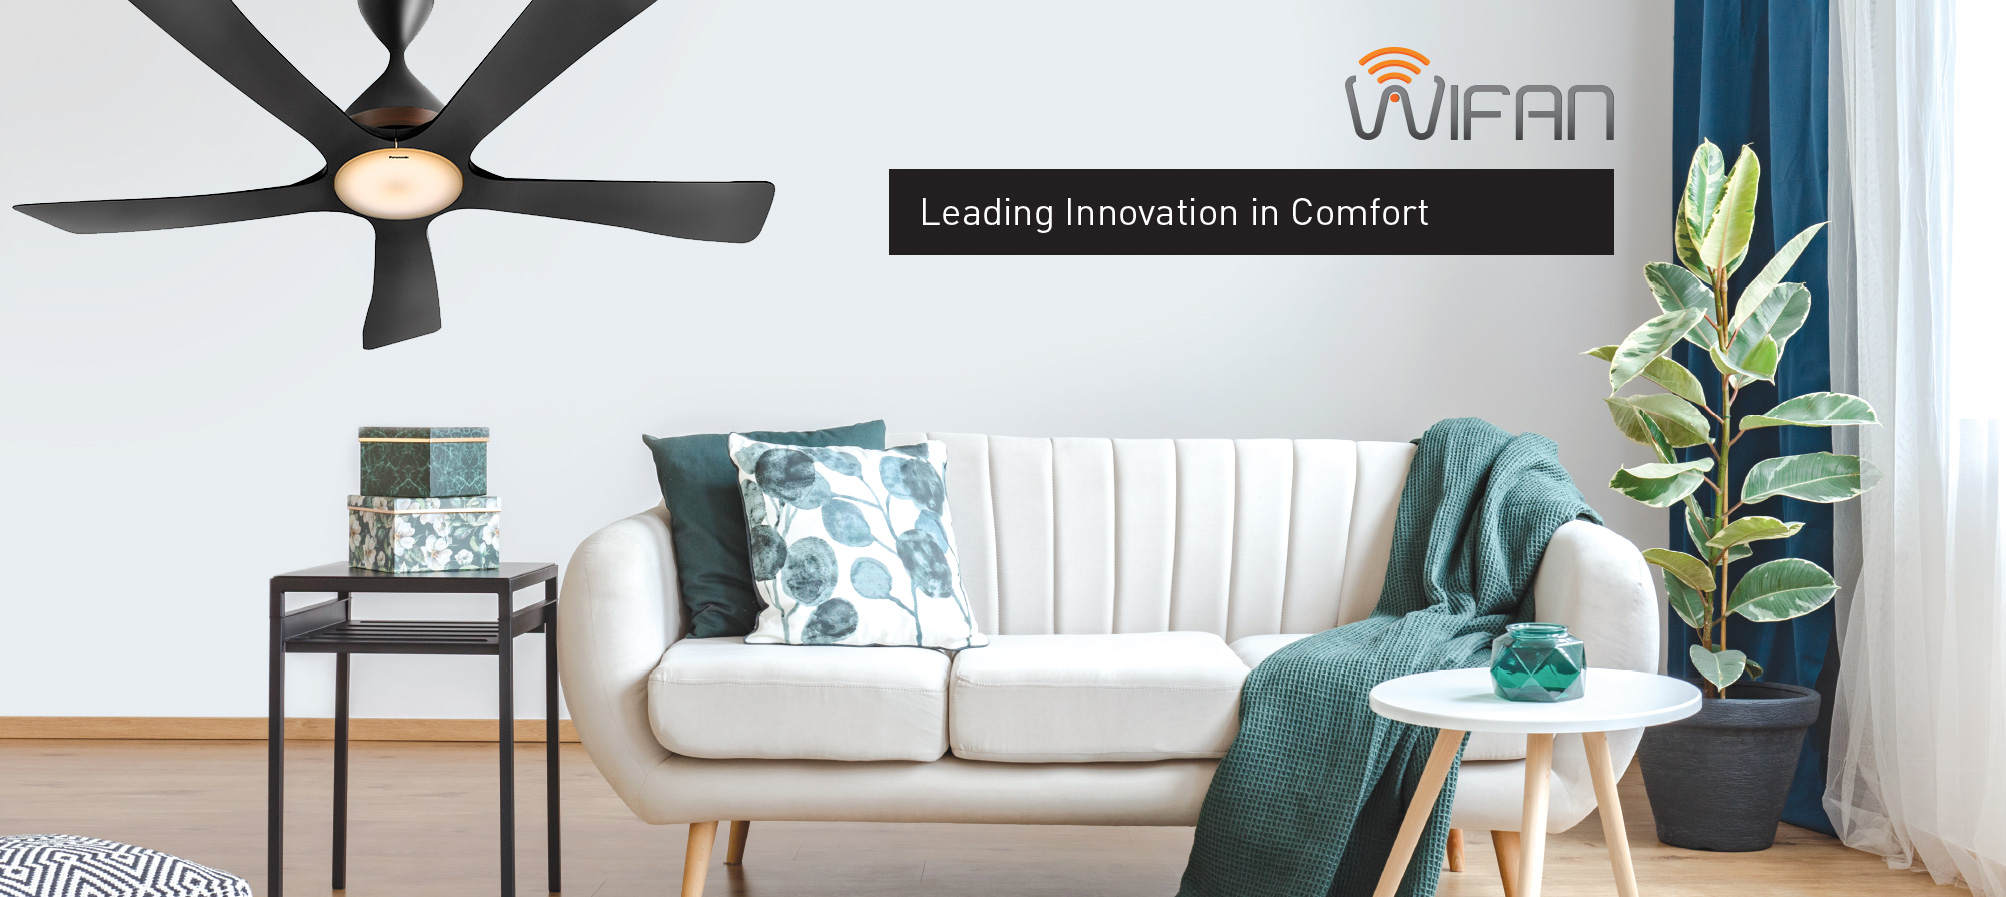 Enter a new generation of control with the new Wifi Fan that's powered with a Mobile App remote control! With the new Panasonic technology, you are just one touch away from a natural breeze.